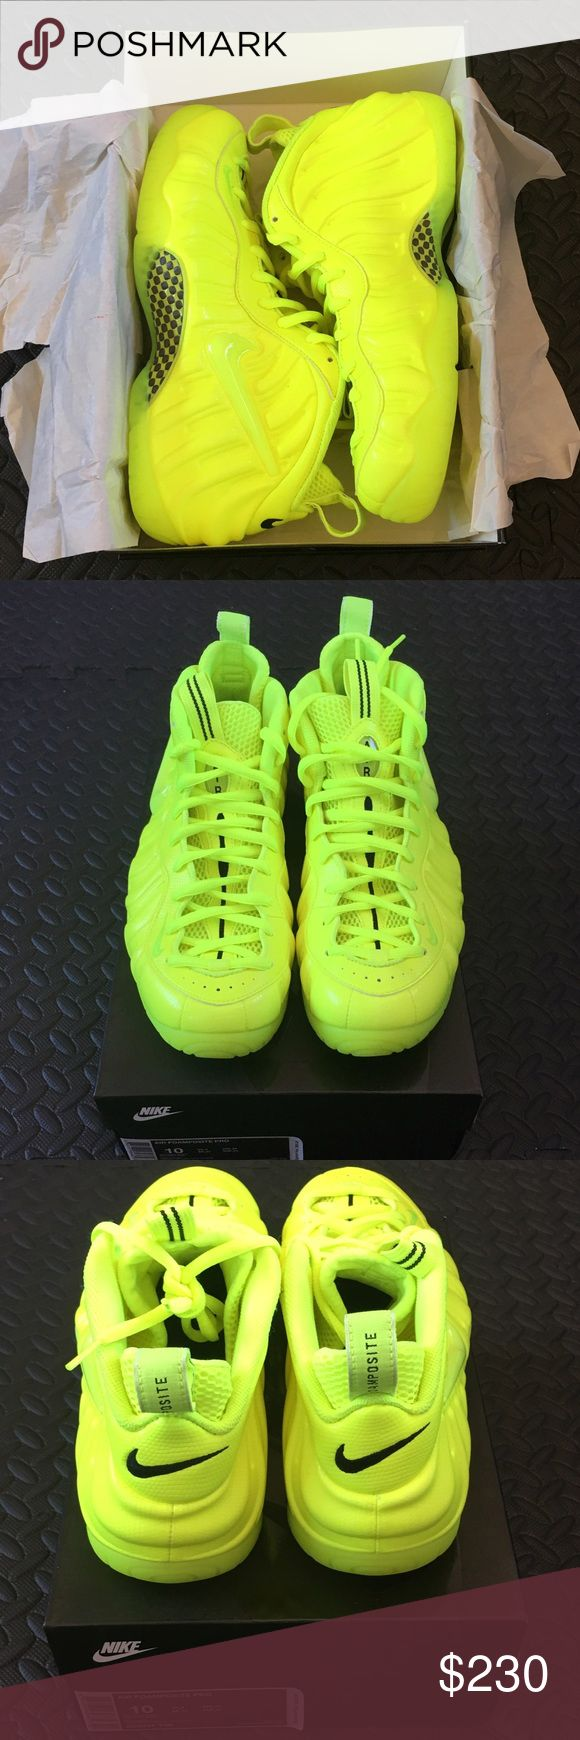 Nike Air Foamposite Pro | Volt Yellow Nike Air Foamposite Pro - Volt/Volt-Black Colorway - New with Tags - Comes with Original Box Nike Shoes Sneakers